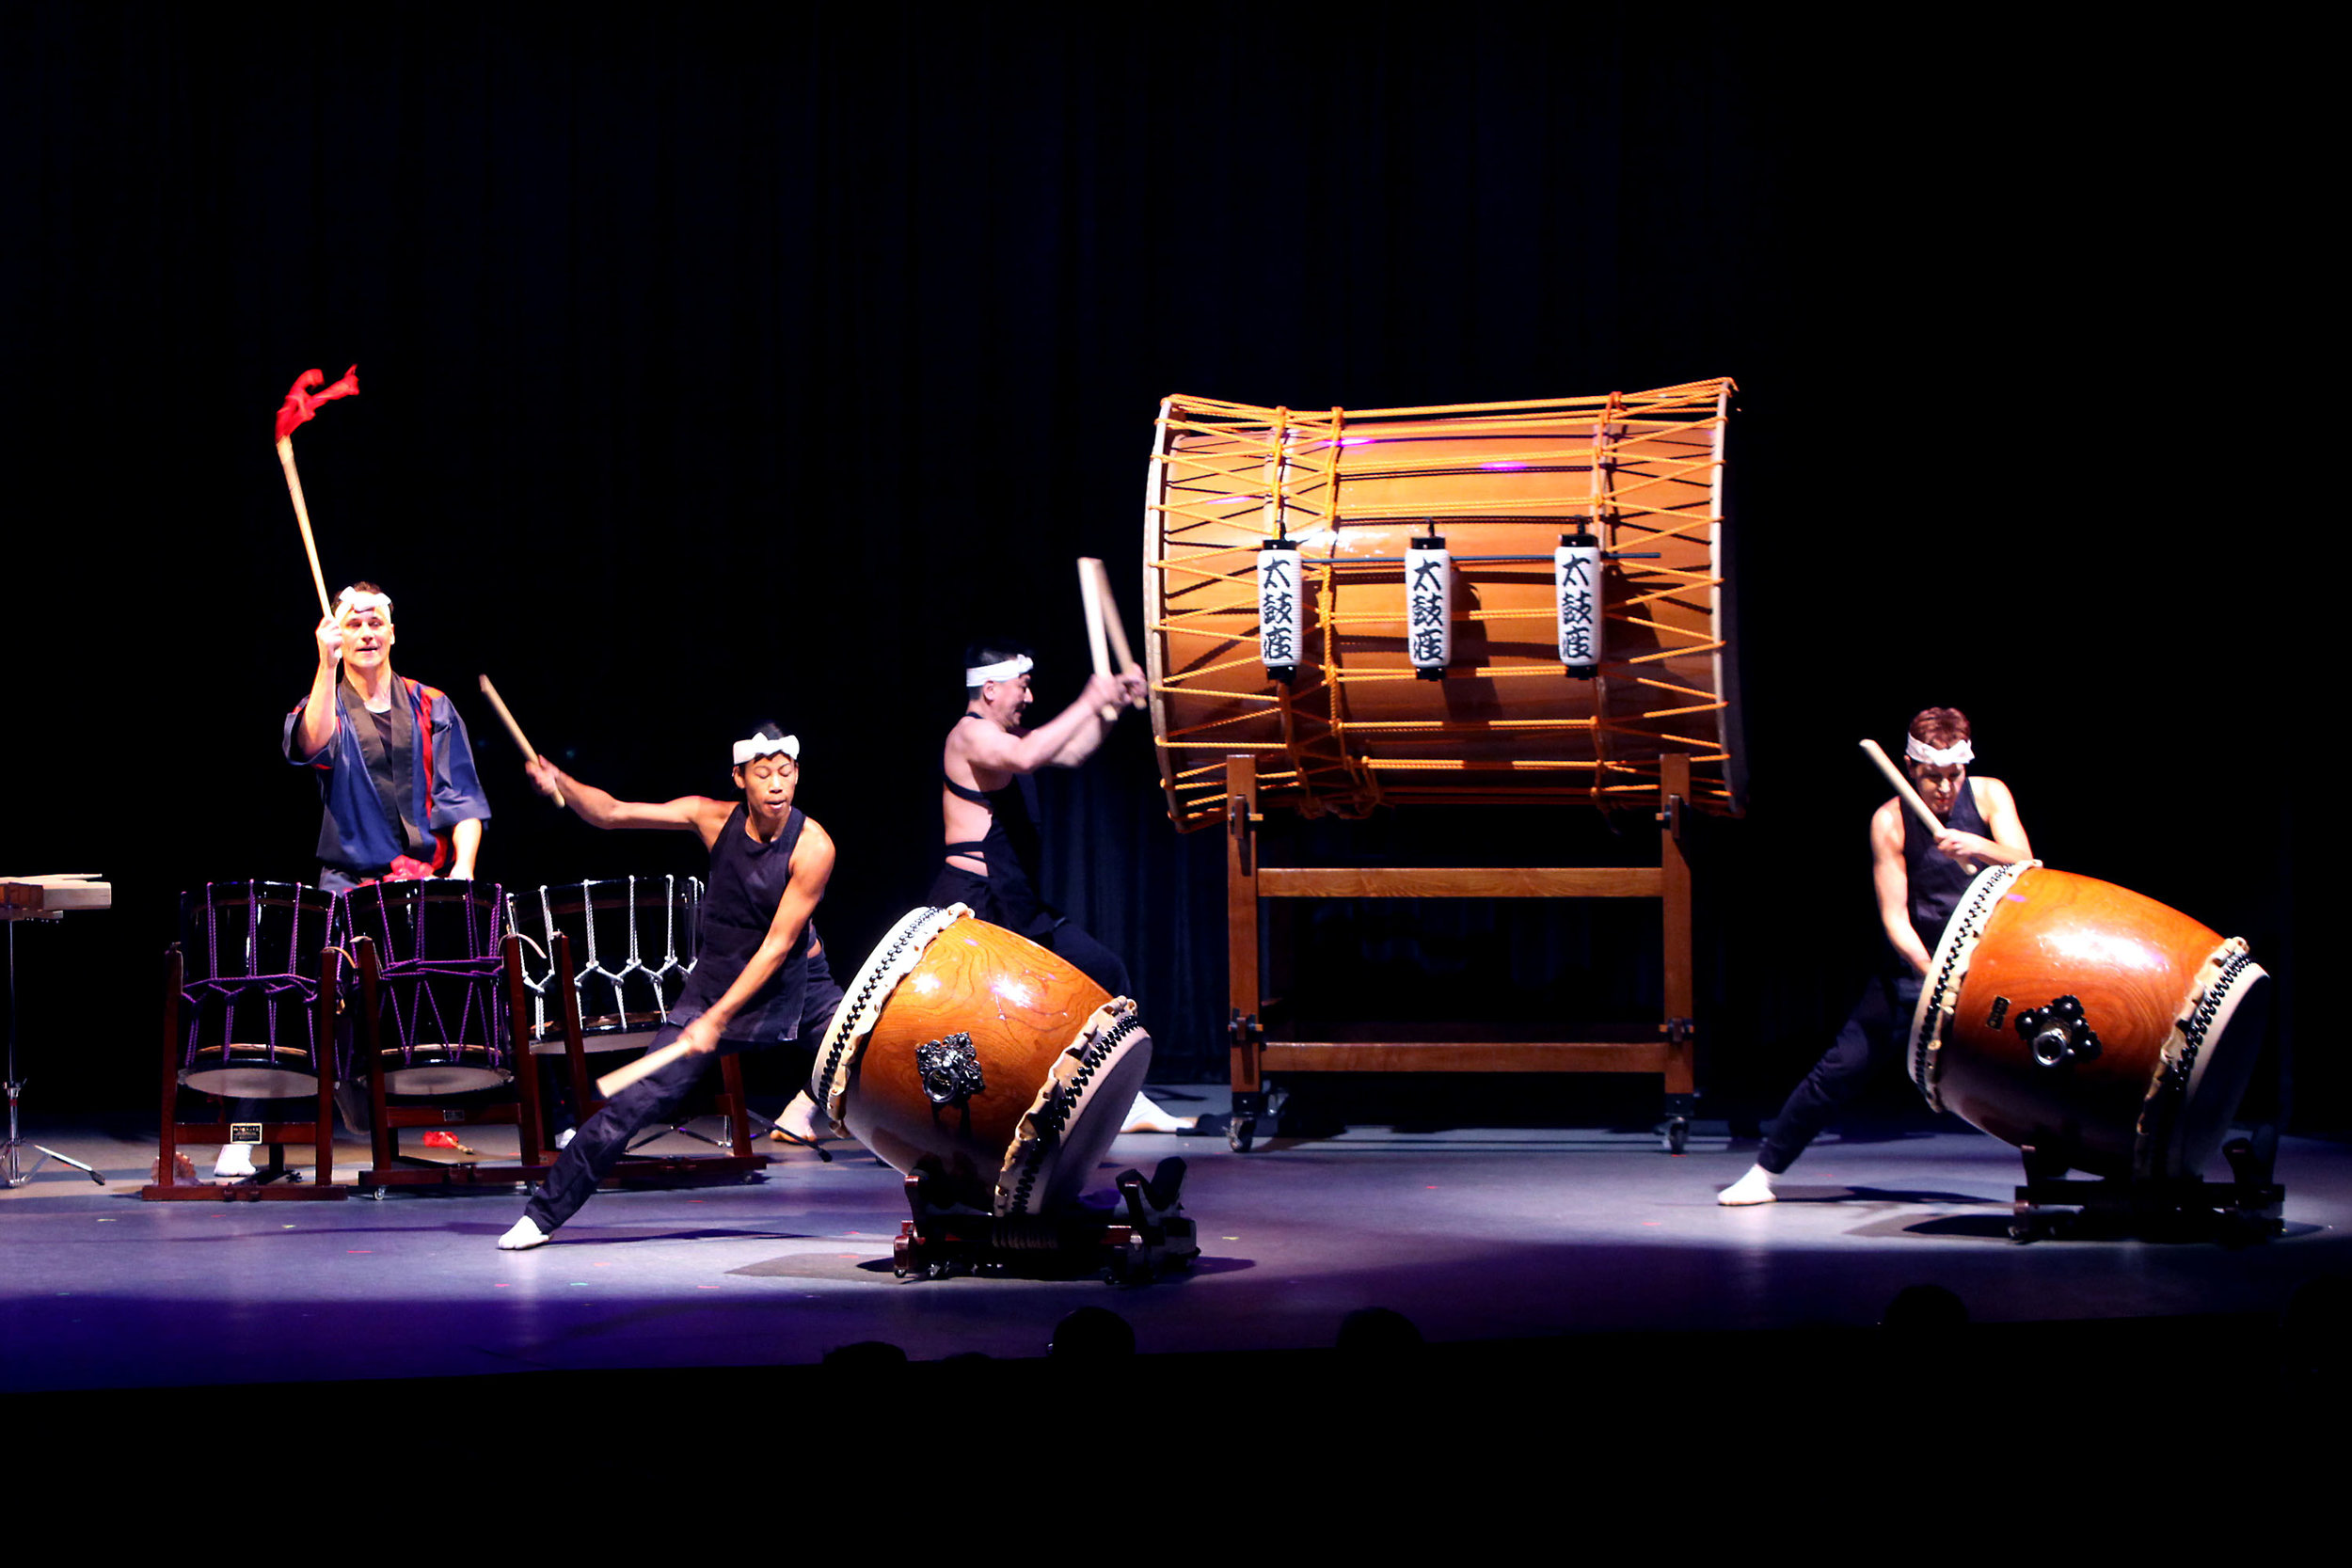 A musical incarnation of raw physical power, Taiko drumming is as much a physical spectacle as an aural one. You'll hear everything from a soft pitter-patter to a thundering, eardrum-bursting shudder, created by a team of artists moving as one. A spectacle not to be missed!